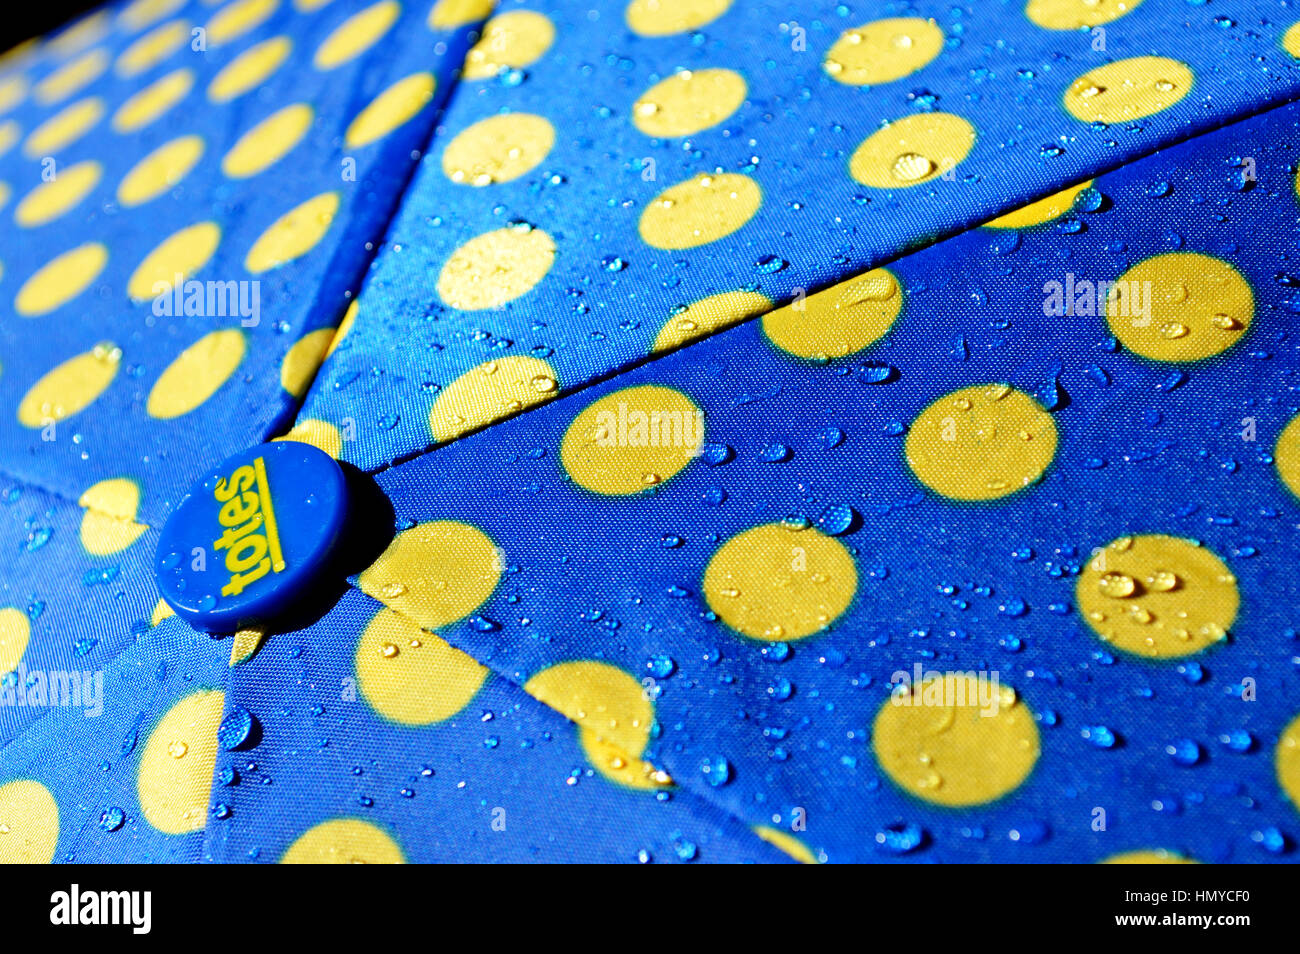 Rain drops on a blue and yellow umbrella. - Stock Image